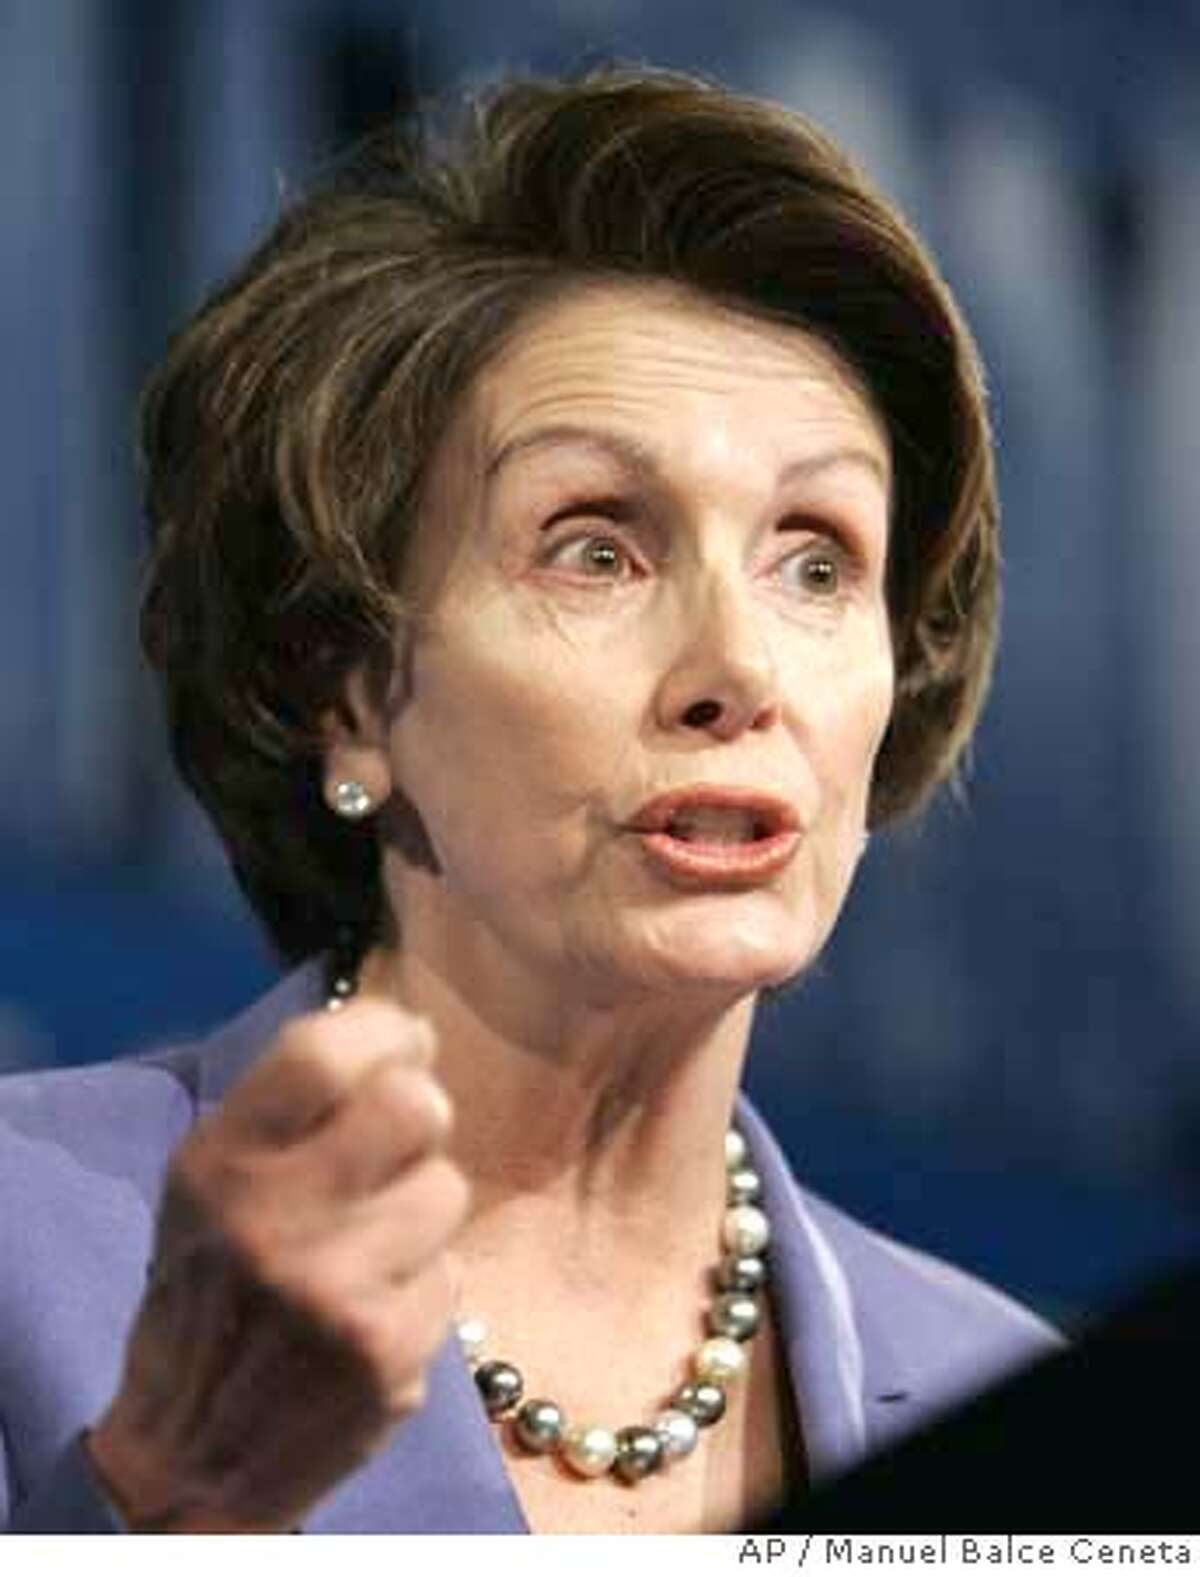 House Speaker Nancy Pelosi of Calif, delivers remarks during the 75th Winter Meeting of the U.S. Conference of Mayors, Wednesday, Jan 24, 2007, in Washington. (AP Photo/Manuel Balce Ceneta)